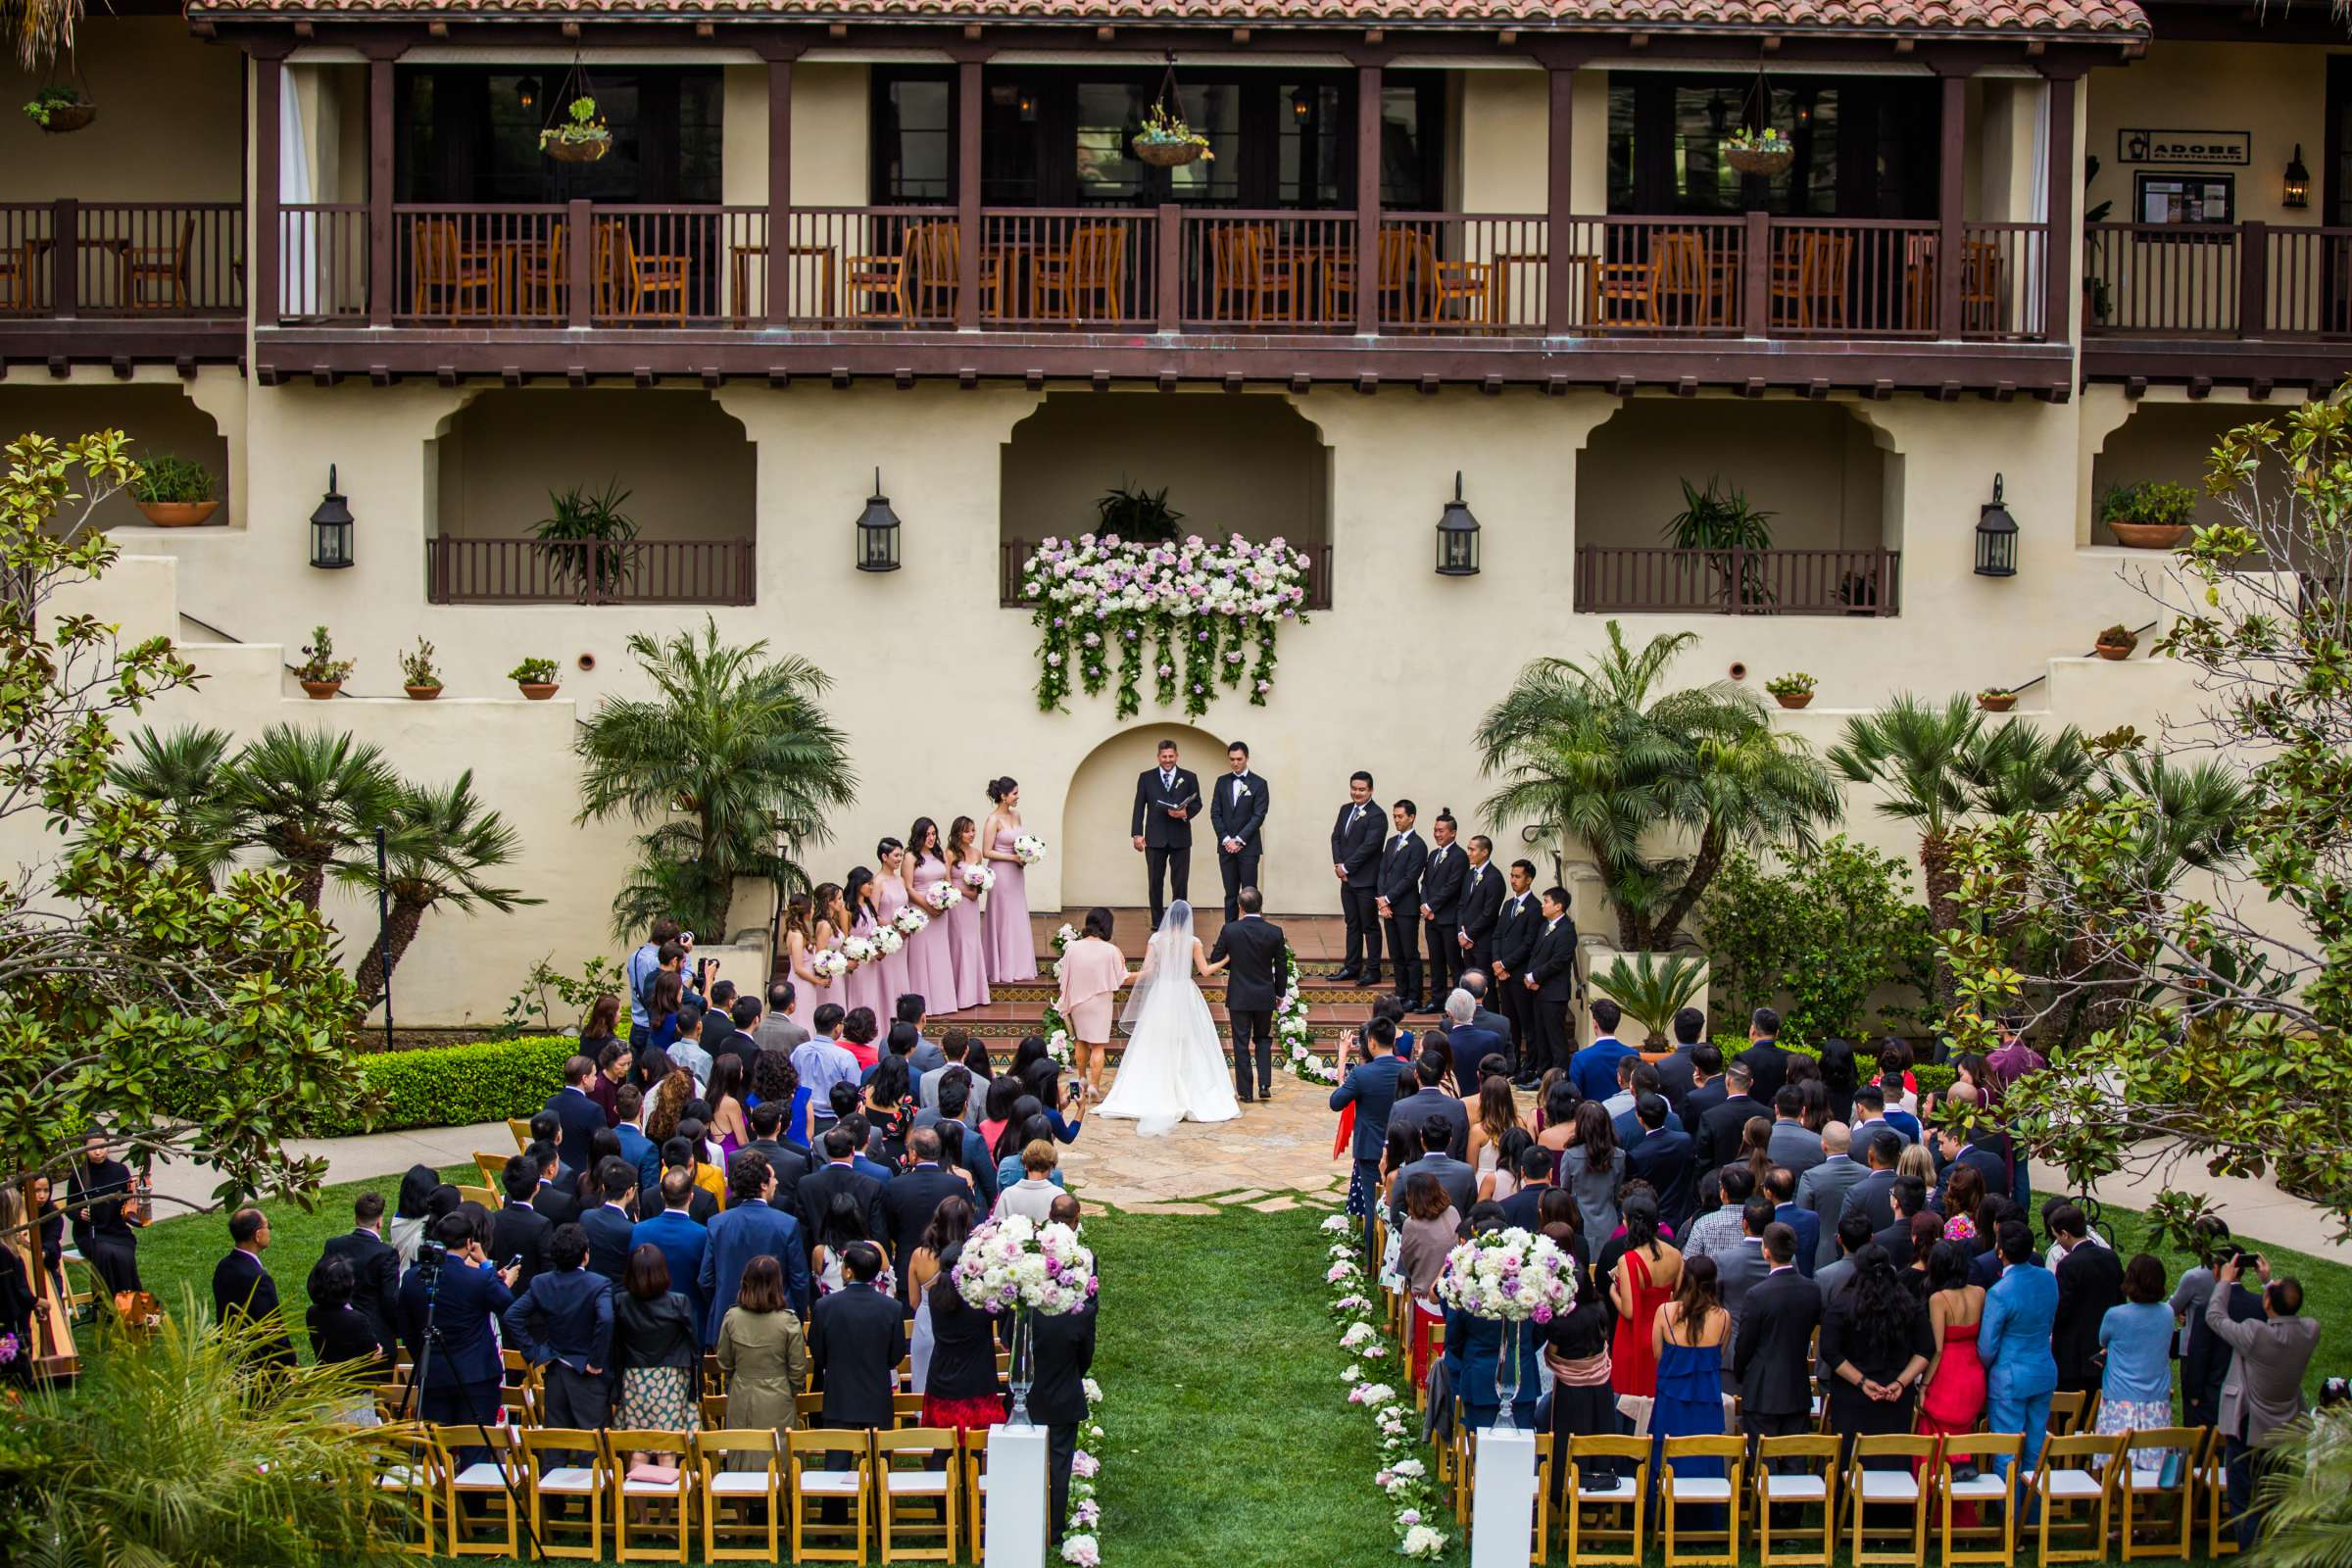 Estancia Wedding coordinated by Sweet Blossom Weddings, Allison and Alvin Wedding Photo #76 by True Photography